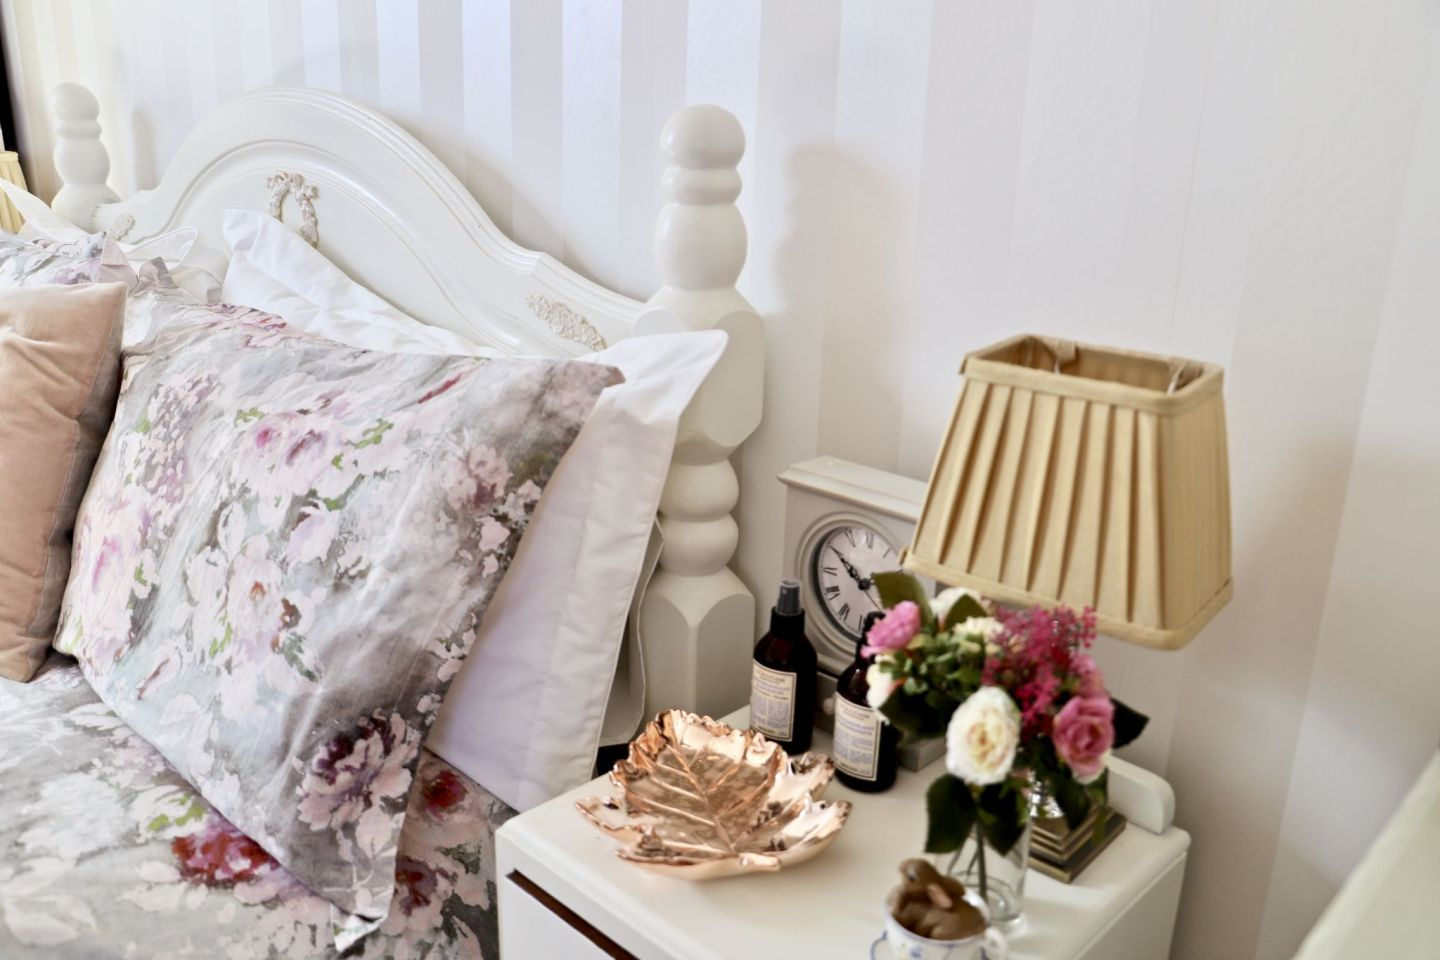 Bedroom cottage farmhouse decor